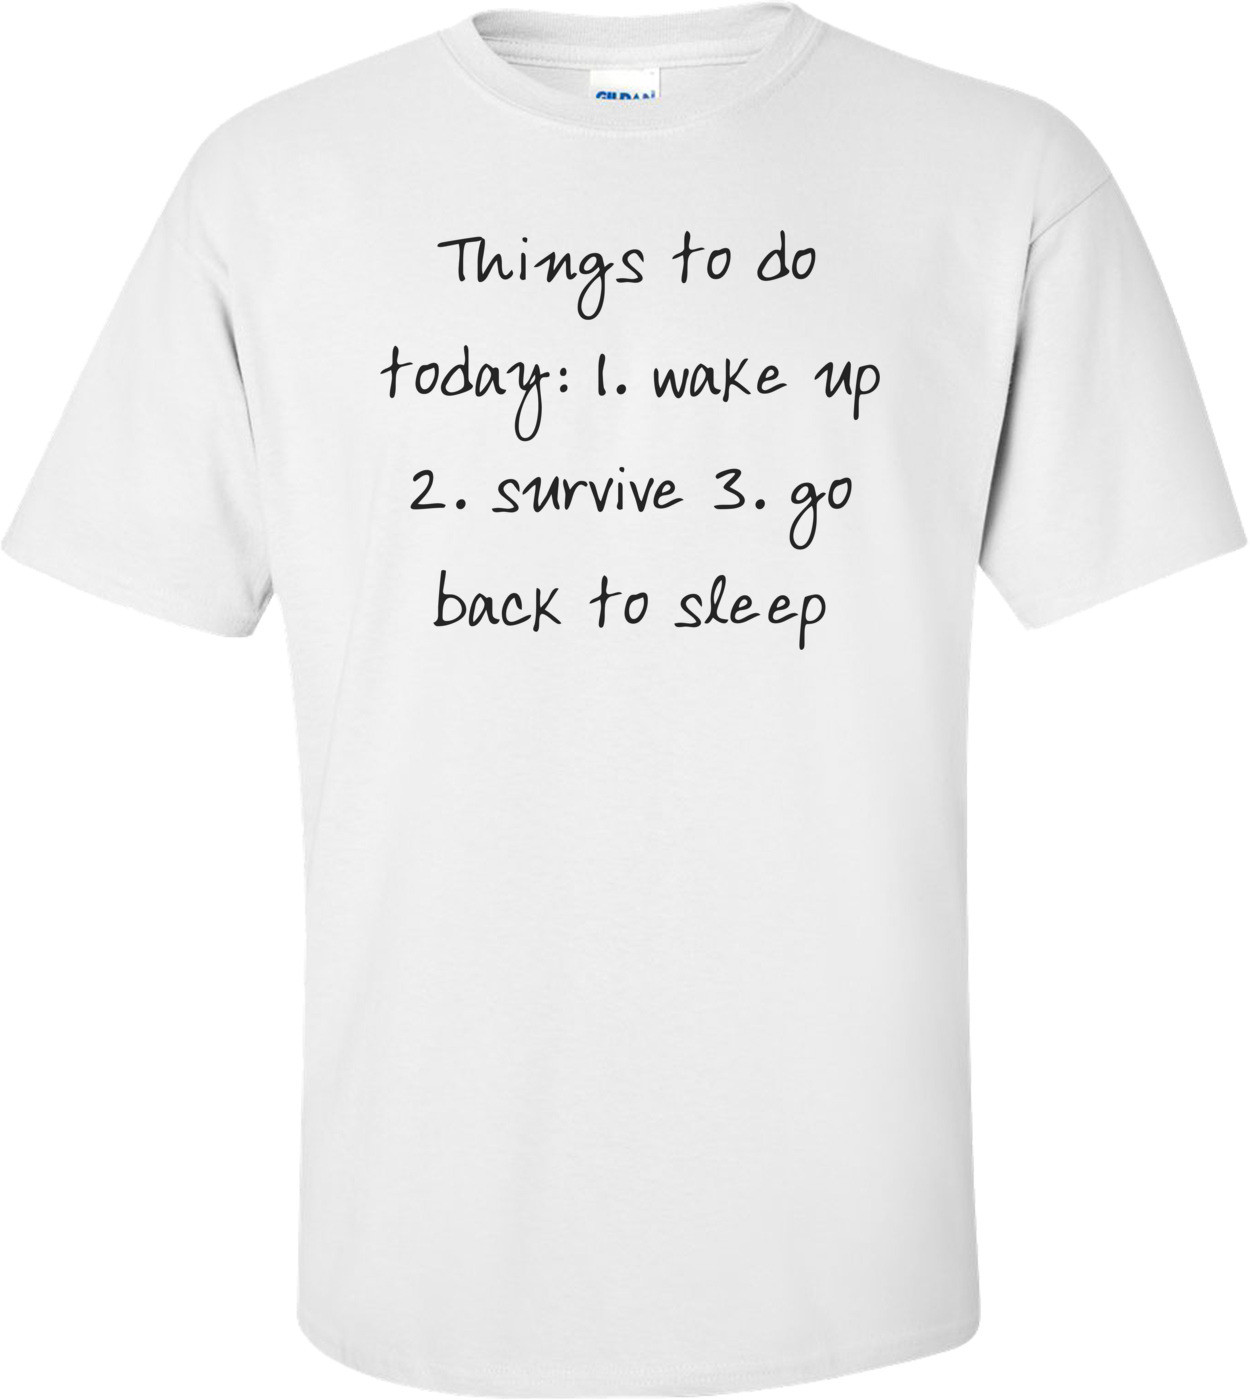 Things to do today: 1. wake up 2. survive 3. go back to sleep Shirt